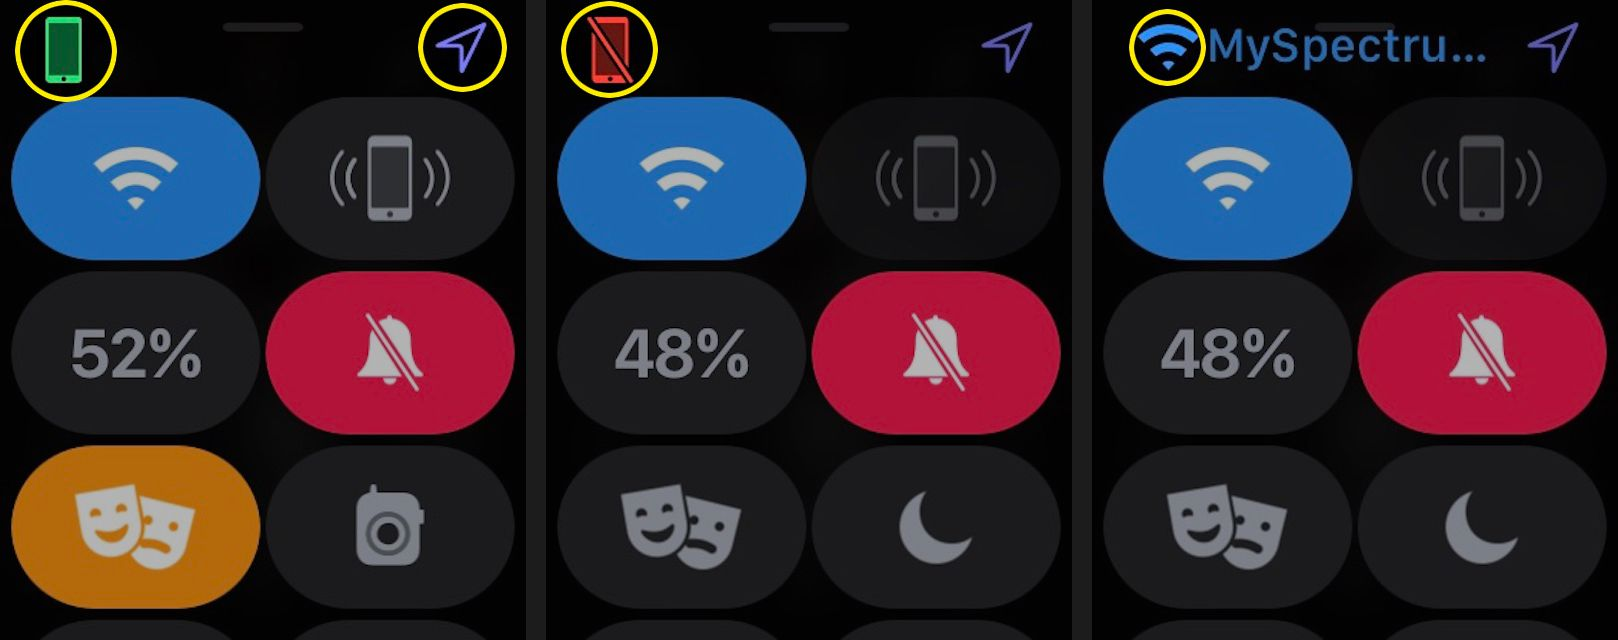 Apple Watch Control Center icons